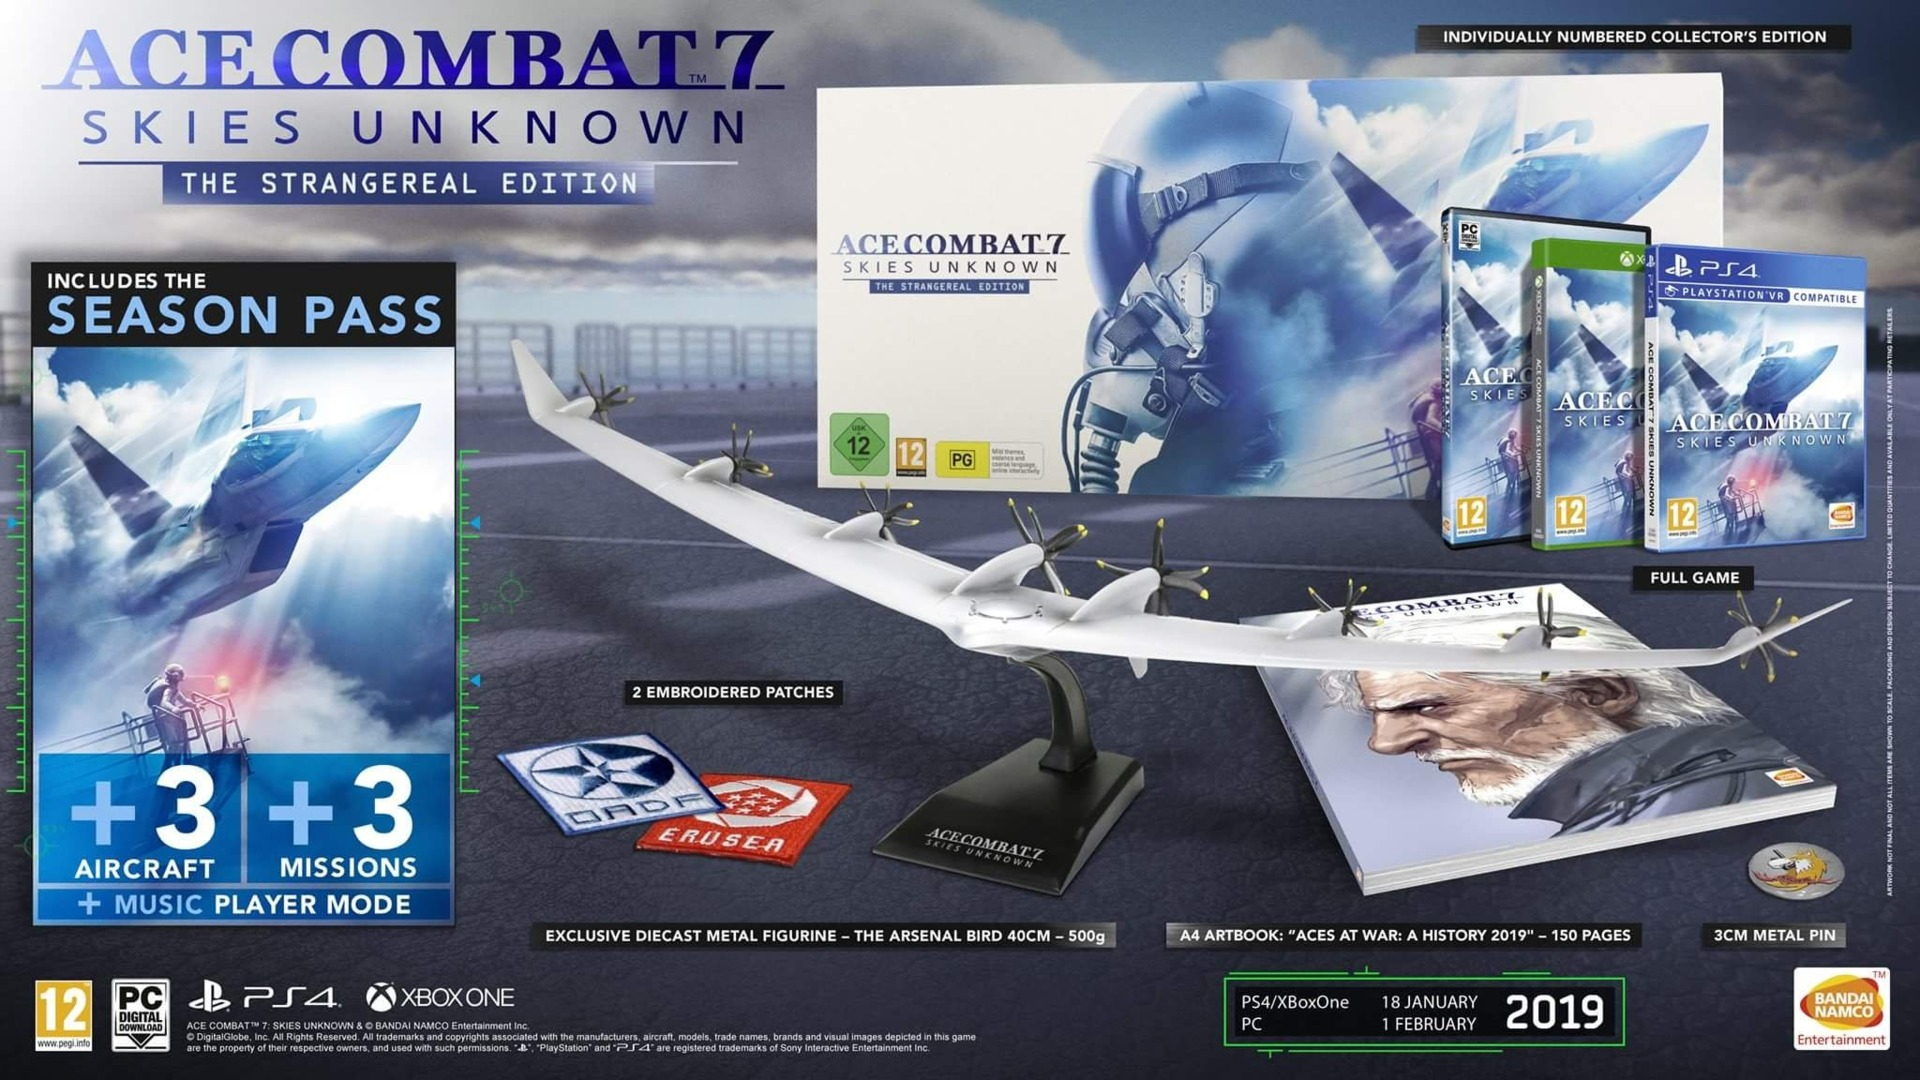 Ace Combat 7: Skies Unknown - Collectors Edition (PC)